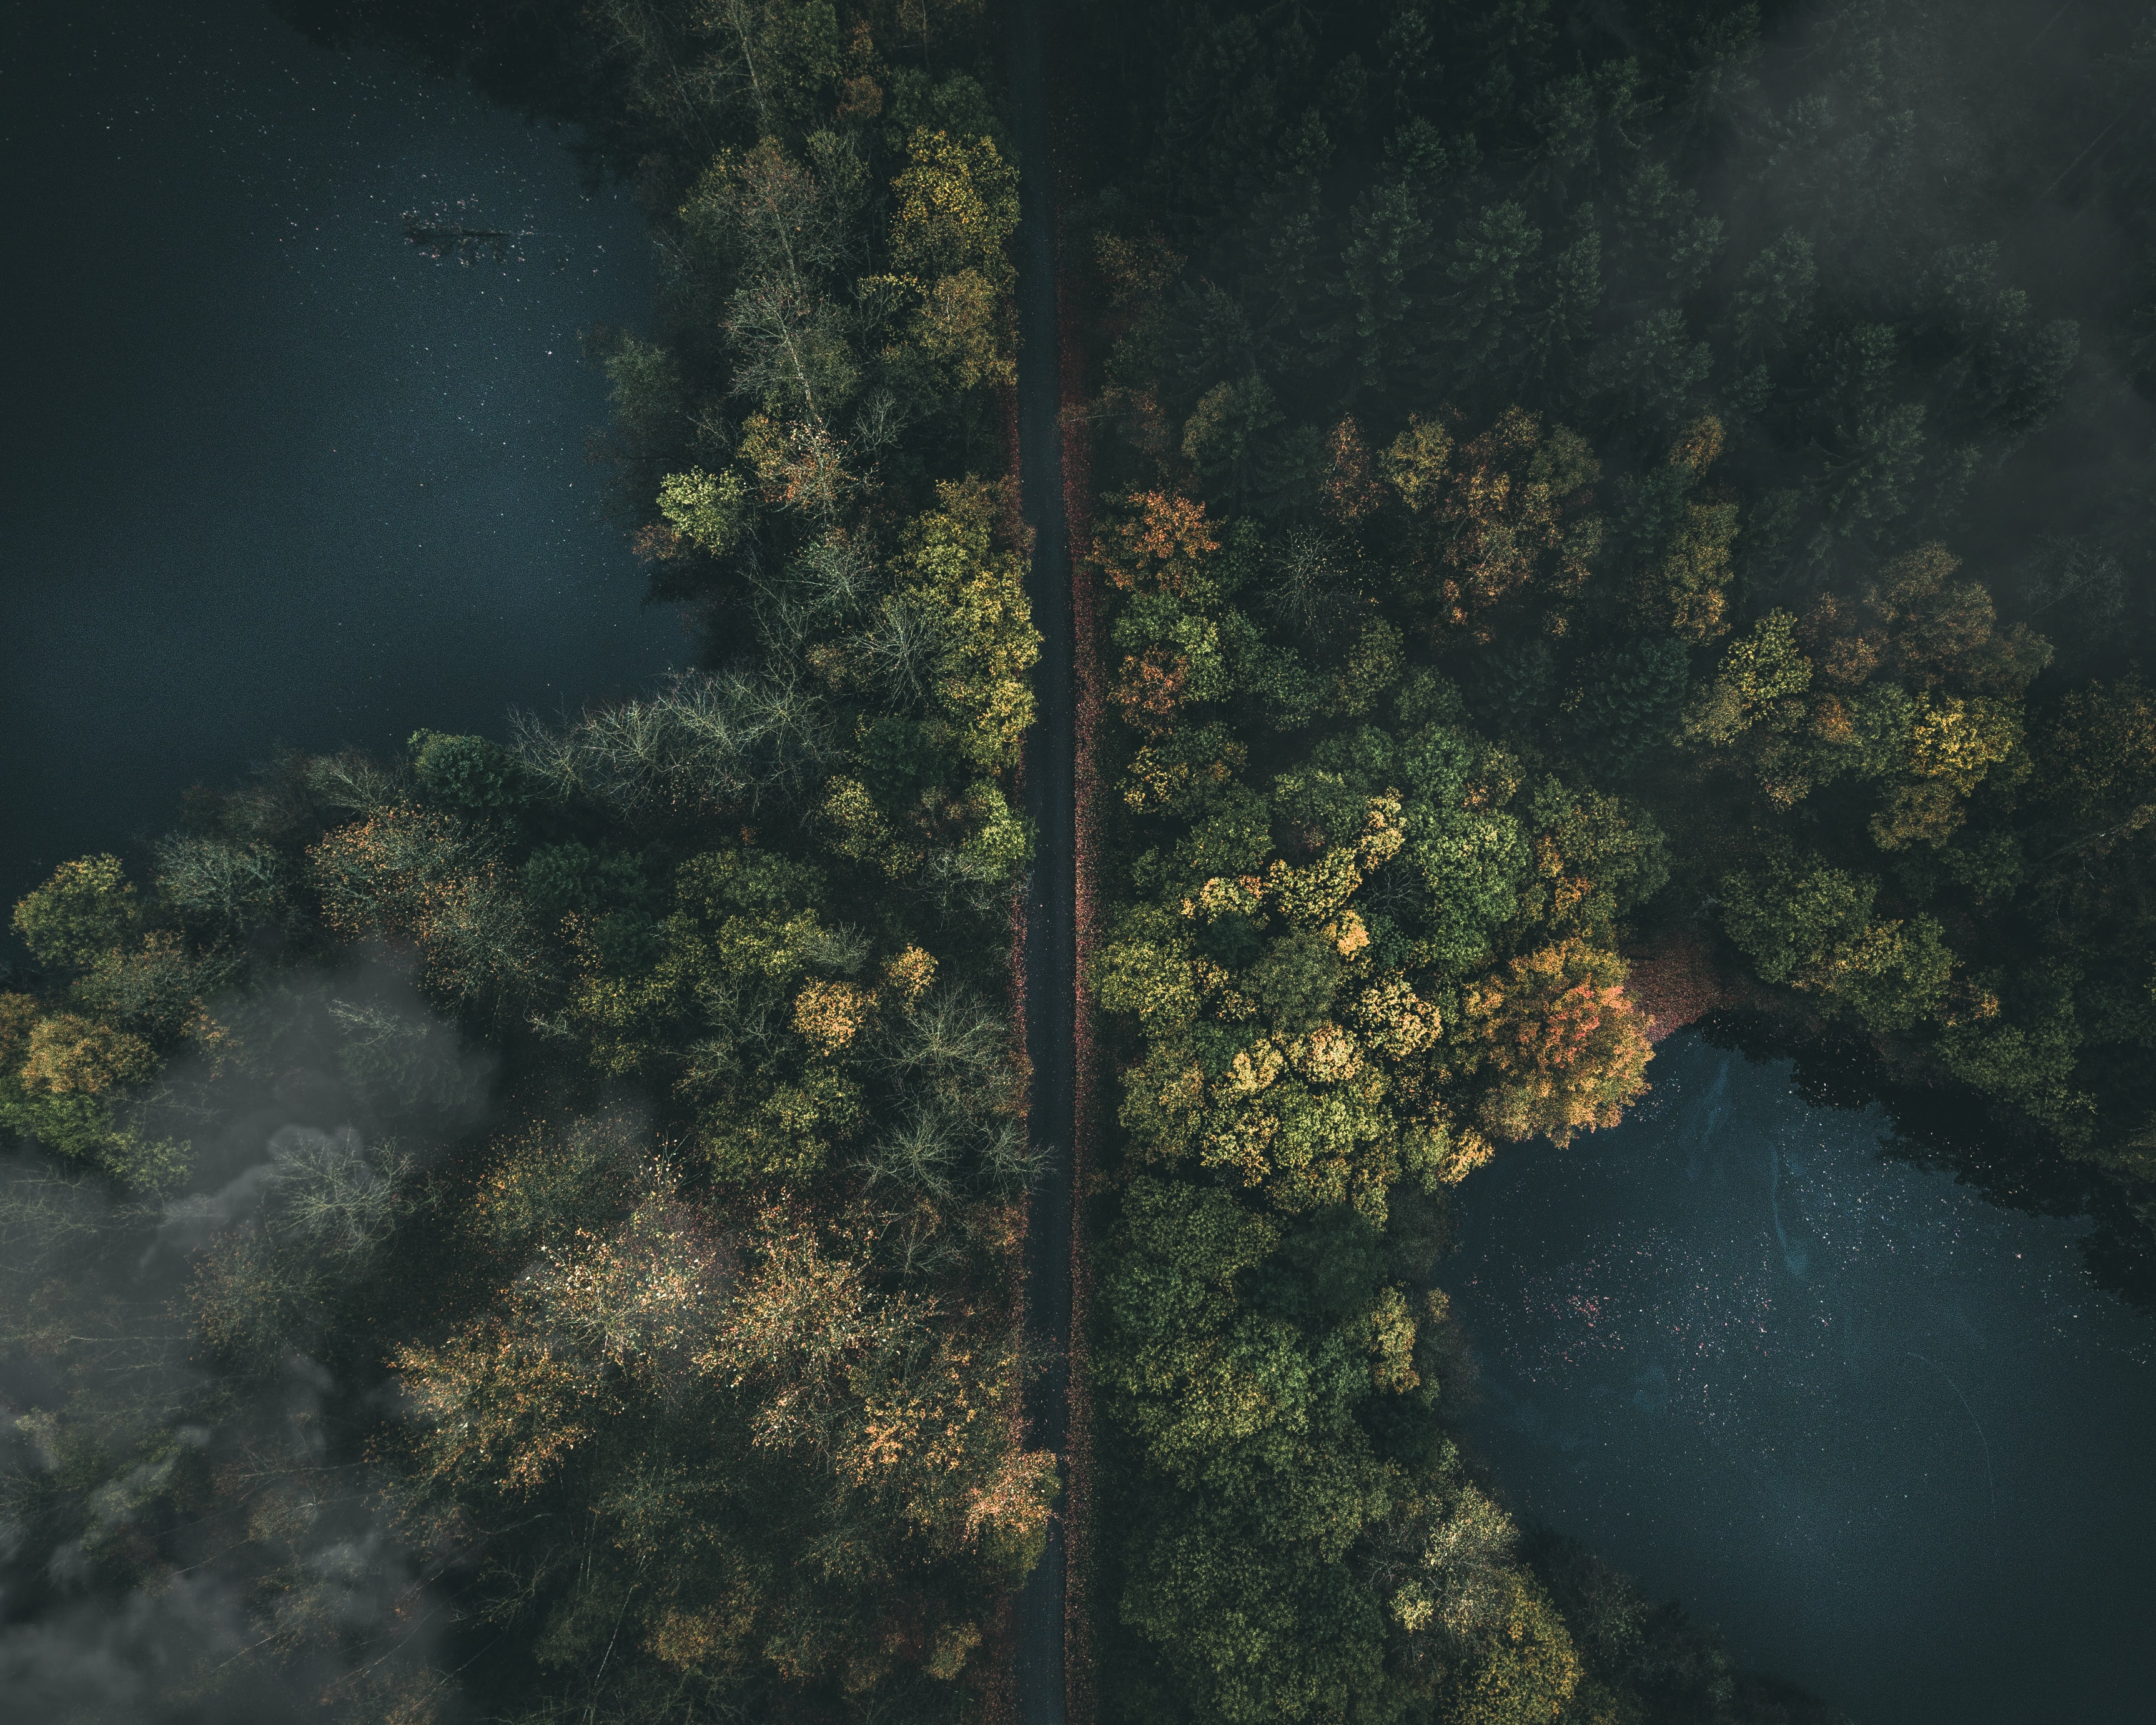 aerial photography of concrete road between trees and blue body of water